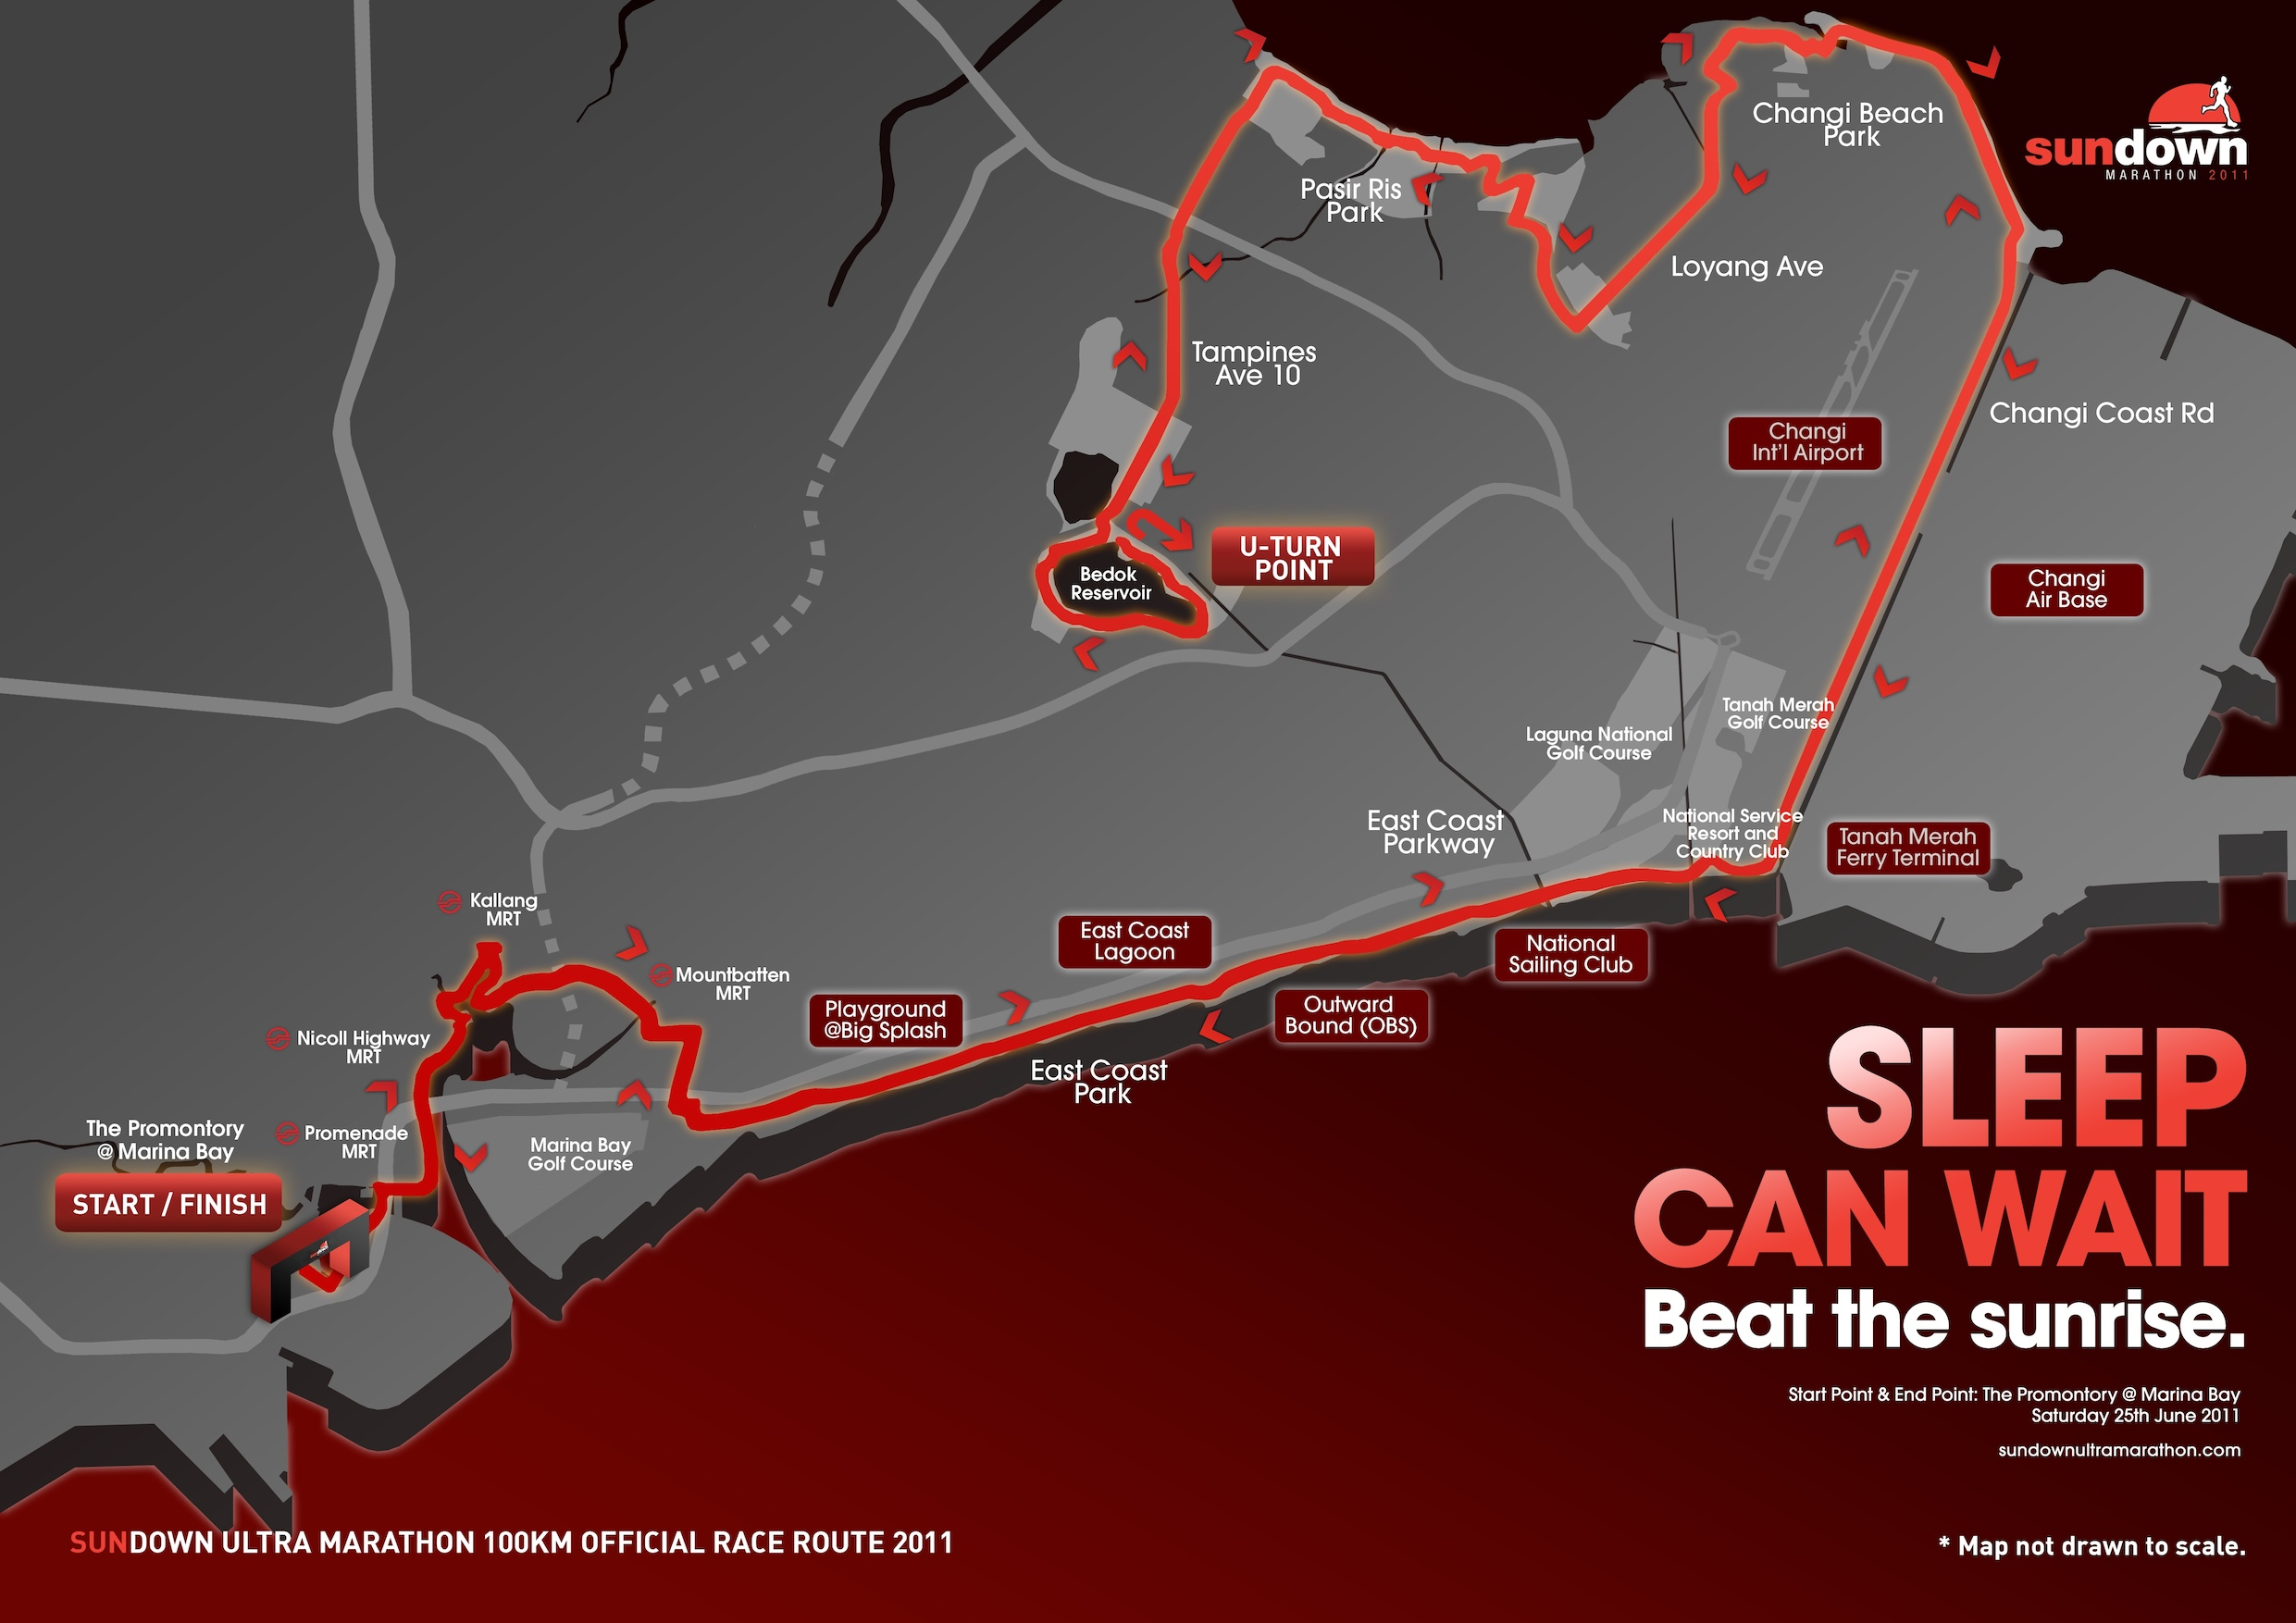 SUNDOWN MARATHON routes confirmed – Red Sports. Always Game.